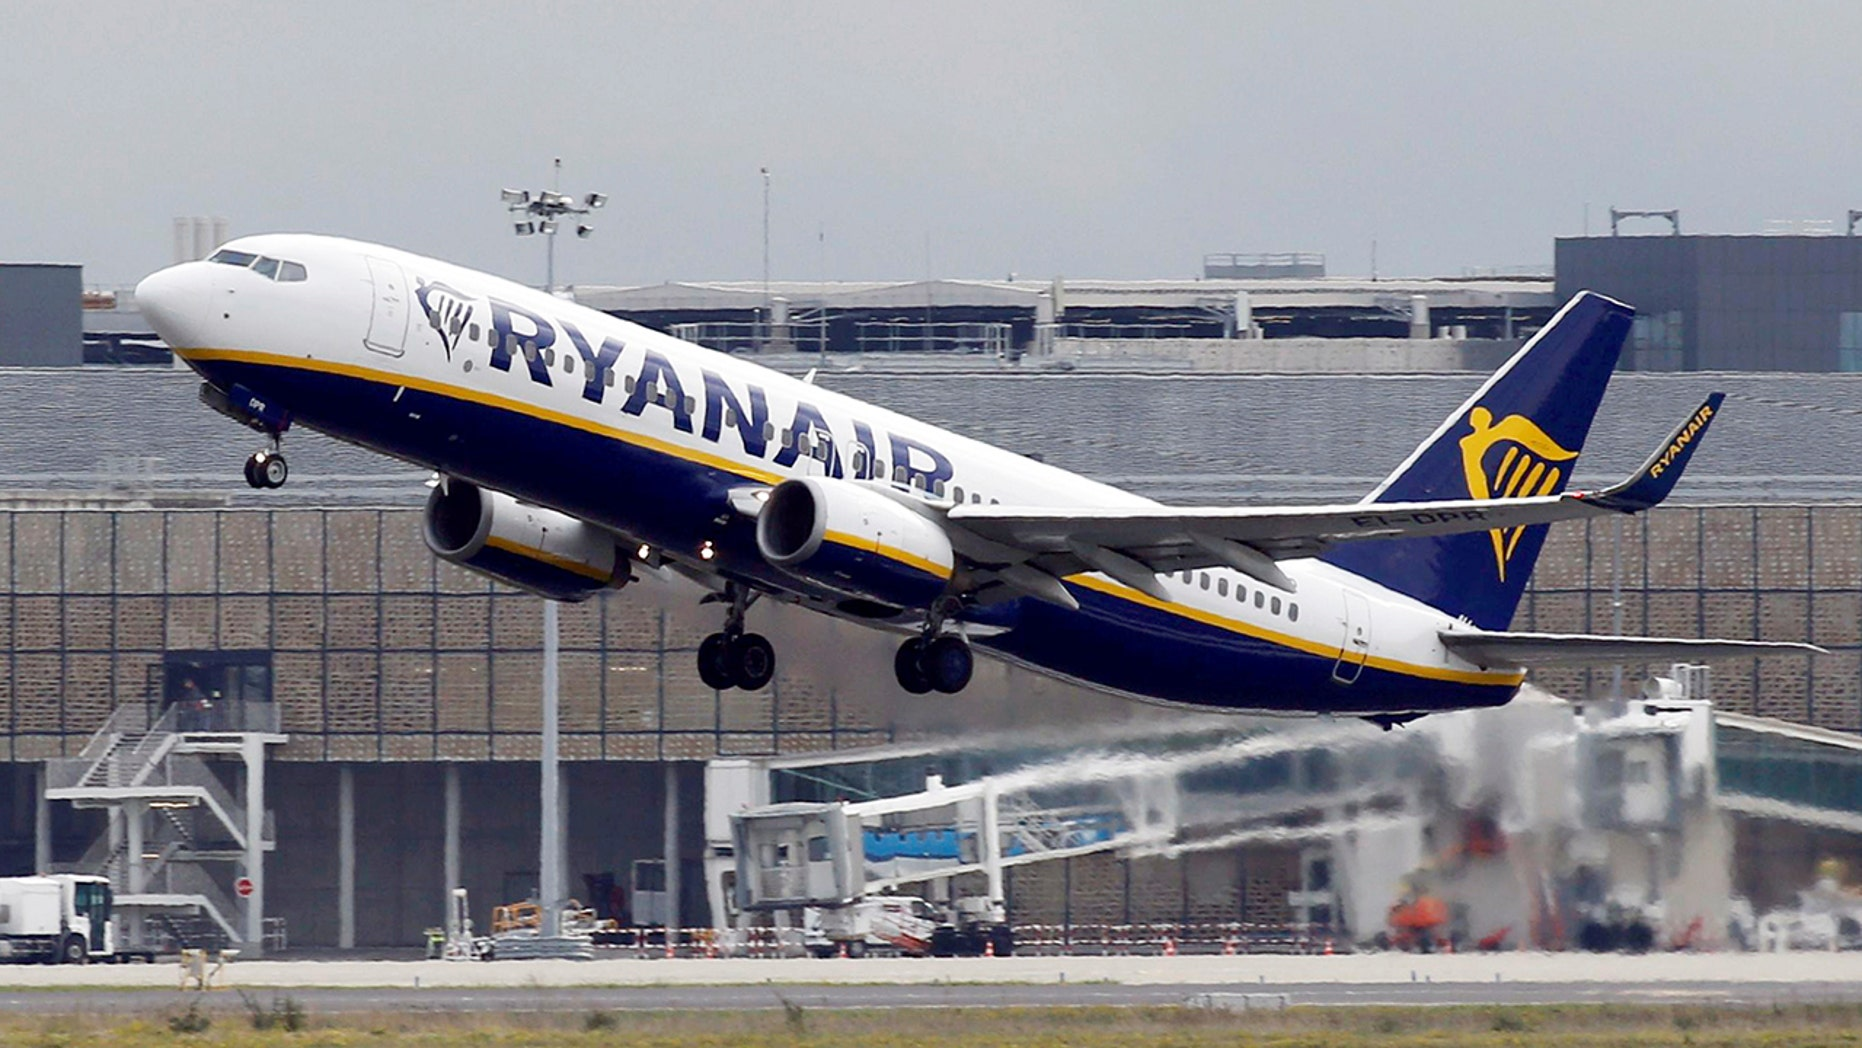 The incidents took place aboard a Ryanair flight from Riga, in Latvia, to Manchester, England. Bajalis was arrested upon arrival in Manchester.